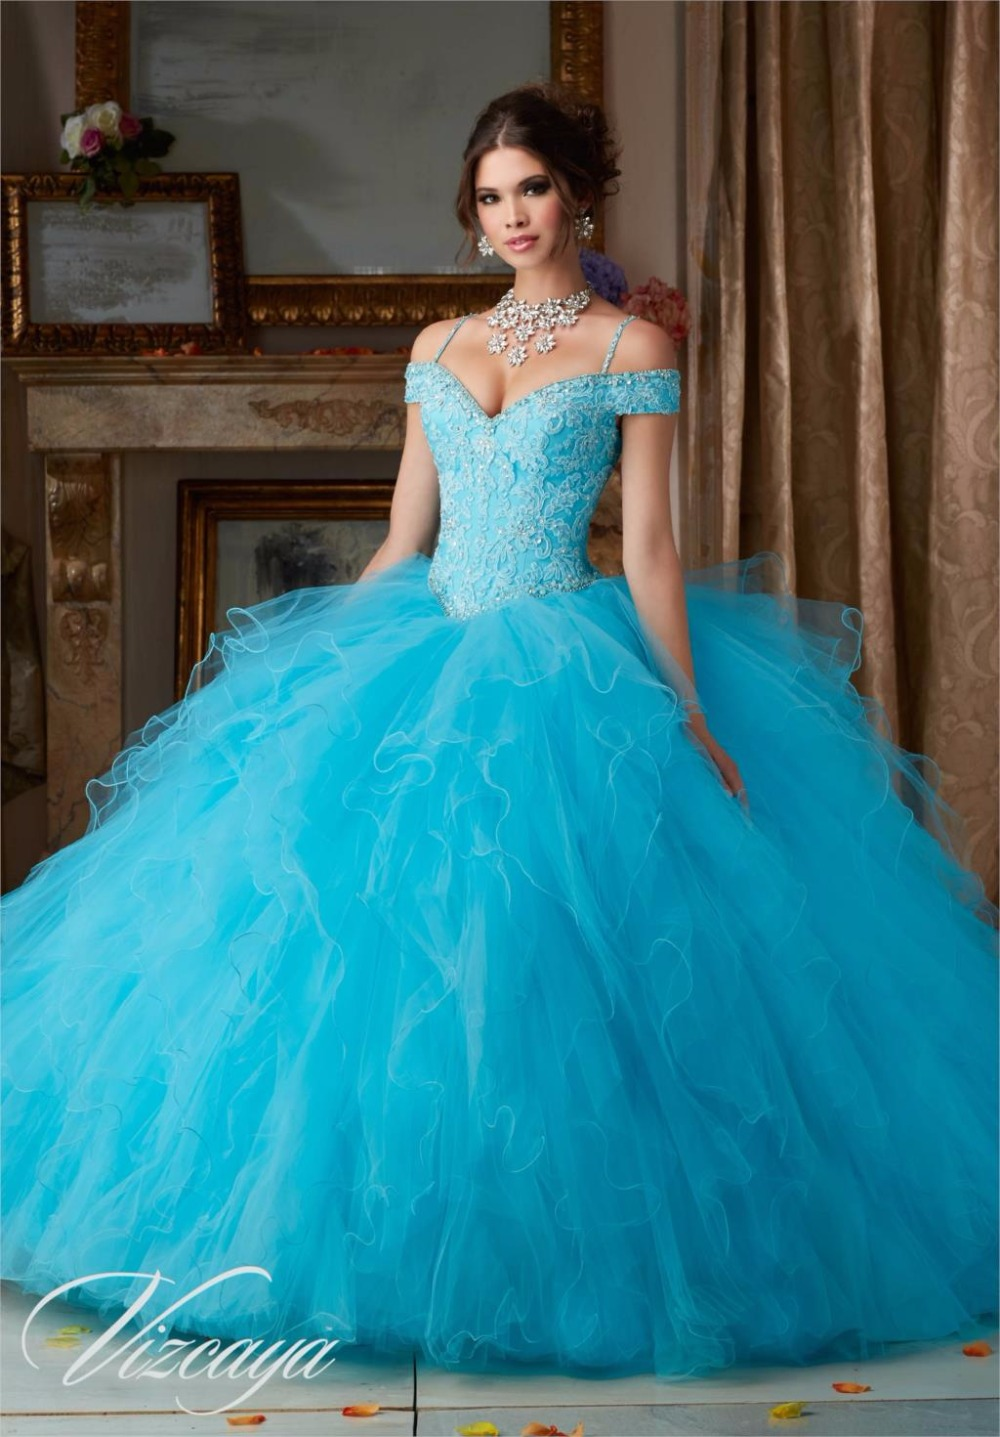 Cheap Coral Blue Champagne Quinceanera Dresses Ball Gown Appliques Fluffy Detachable Gowns Sweet 16 Pageant Dresses